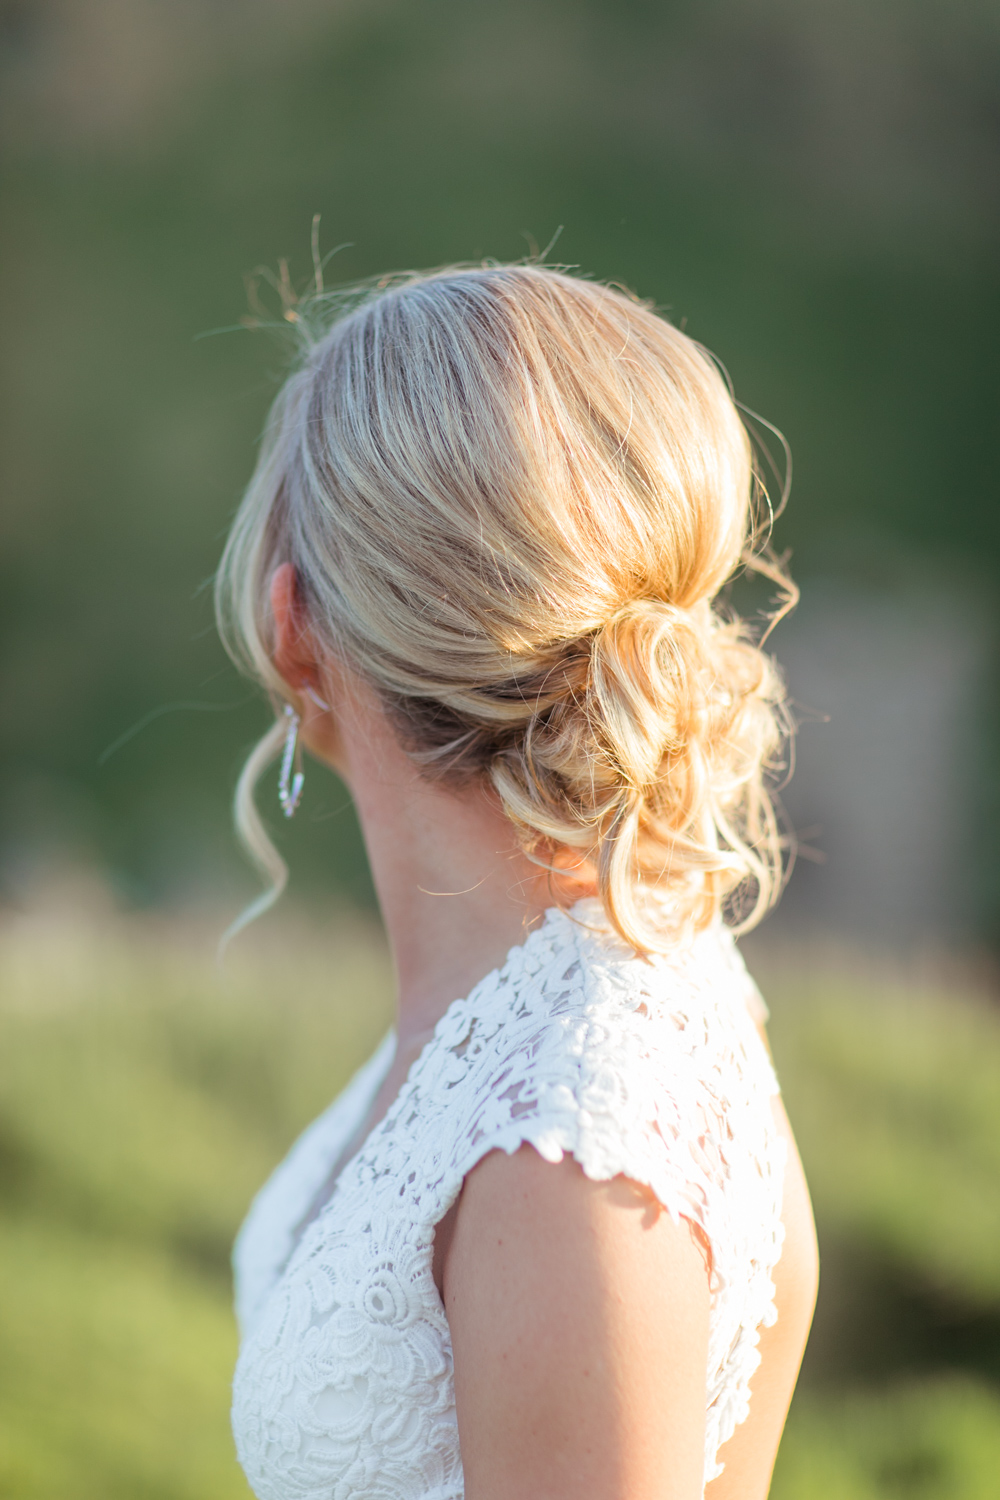 lace top of a wedding dress with shoulder caps and a loose upstyle hairdo